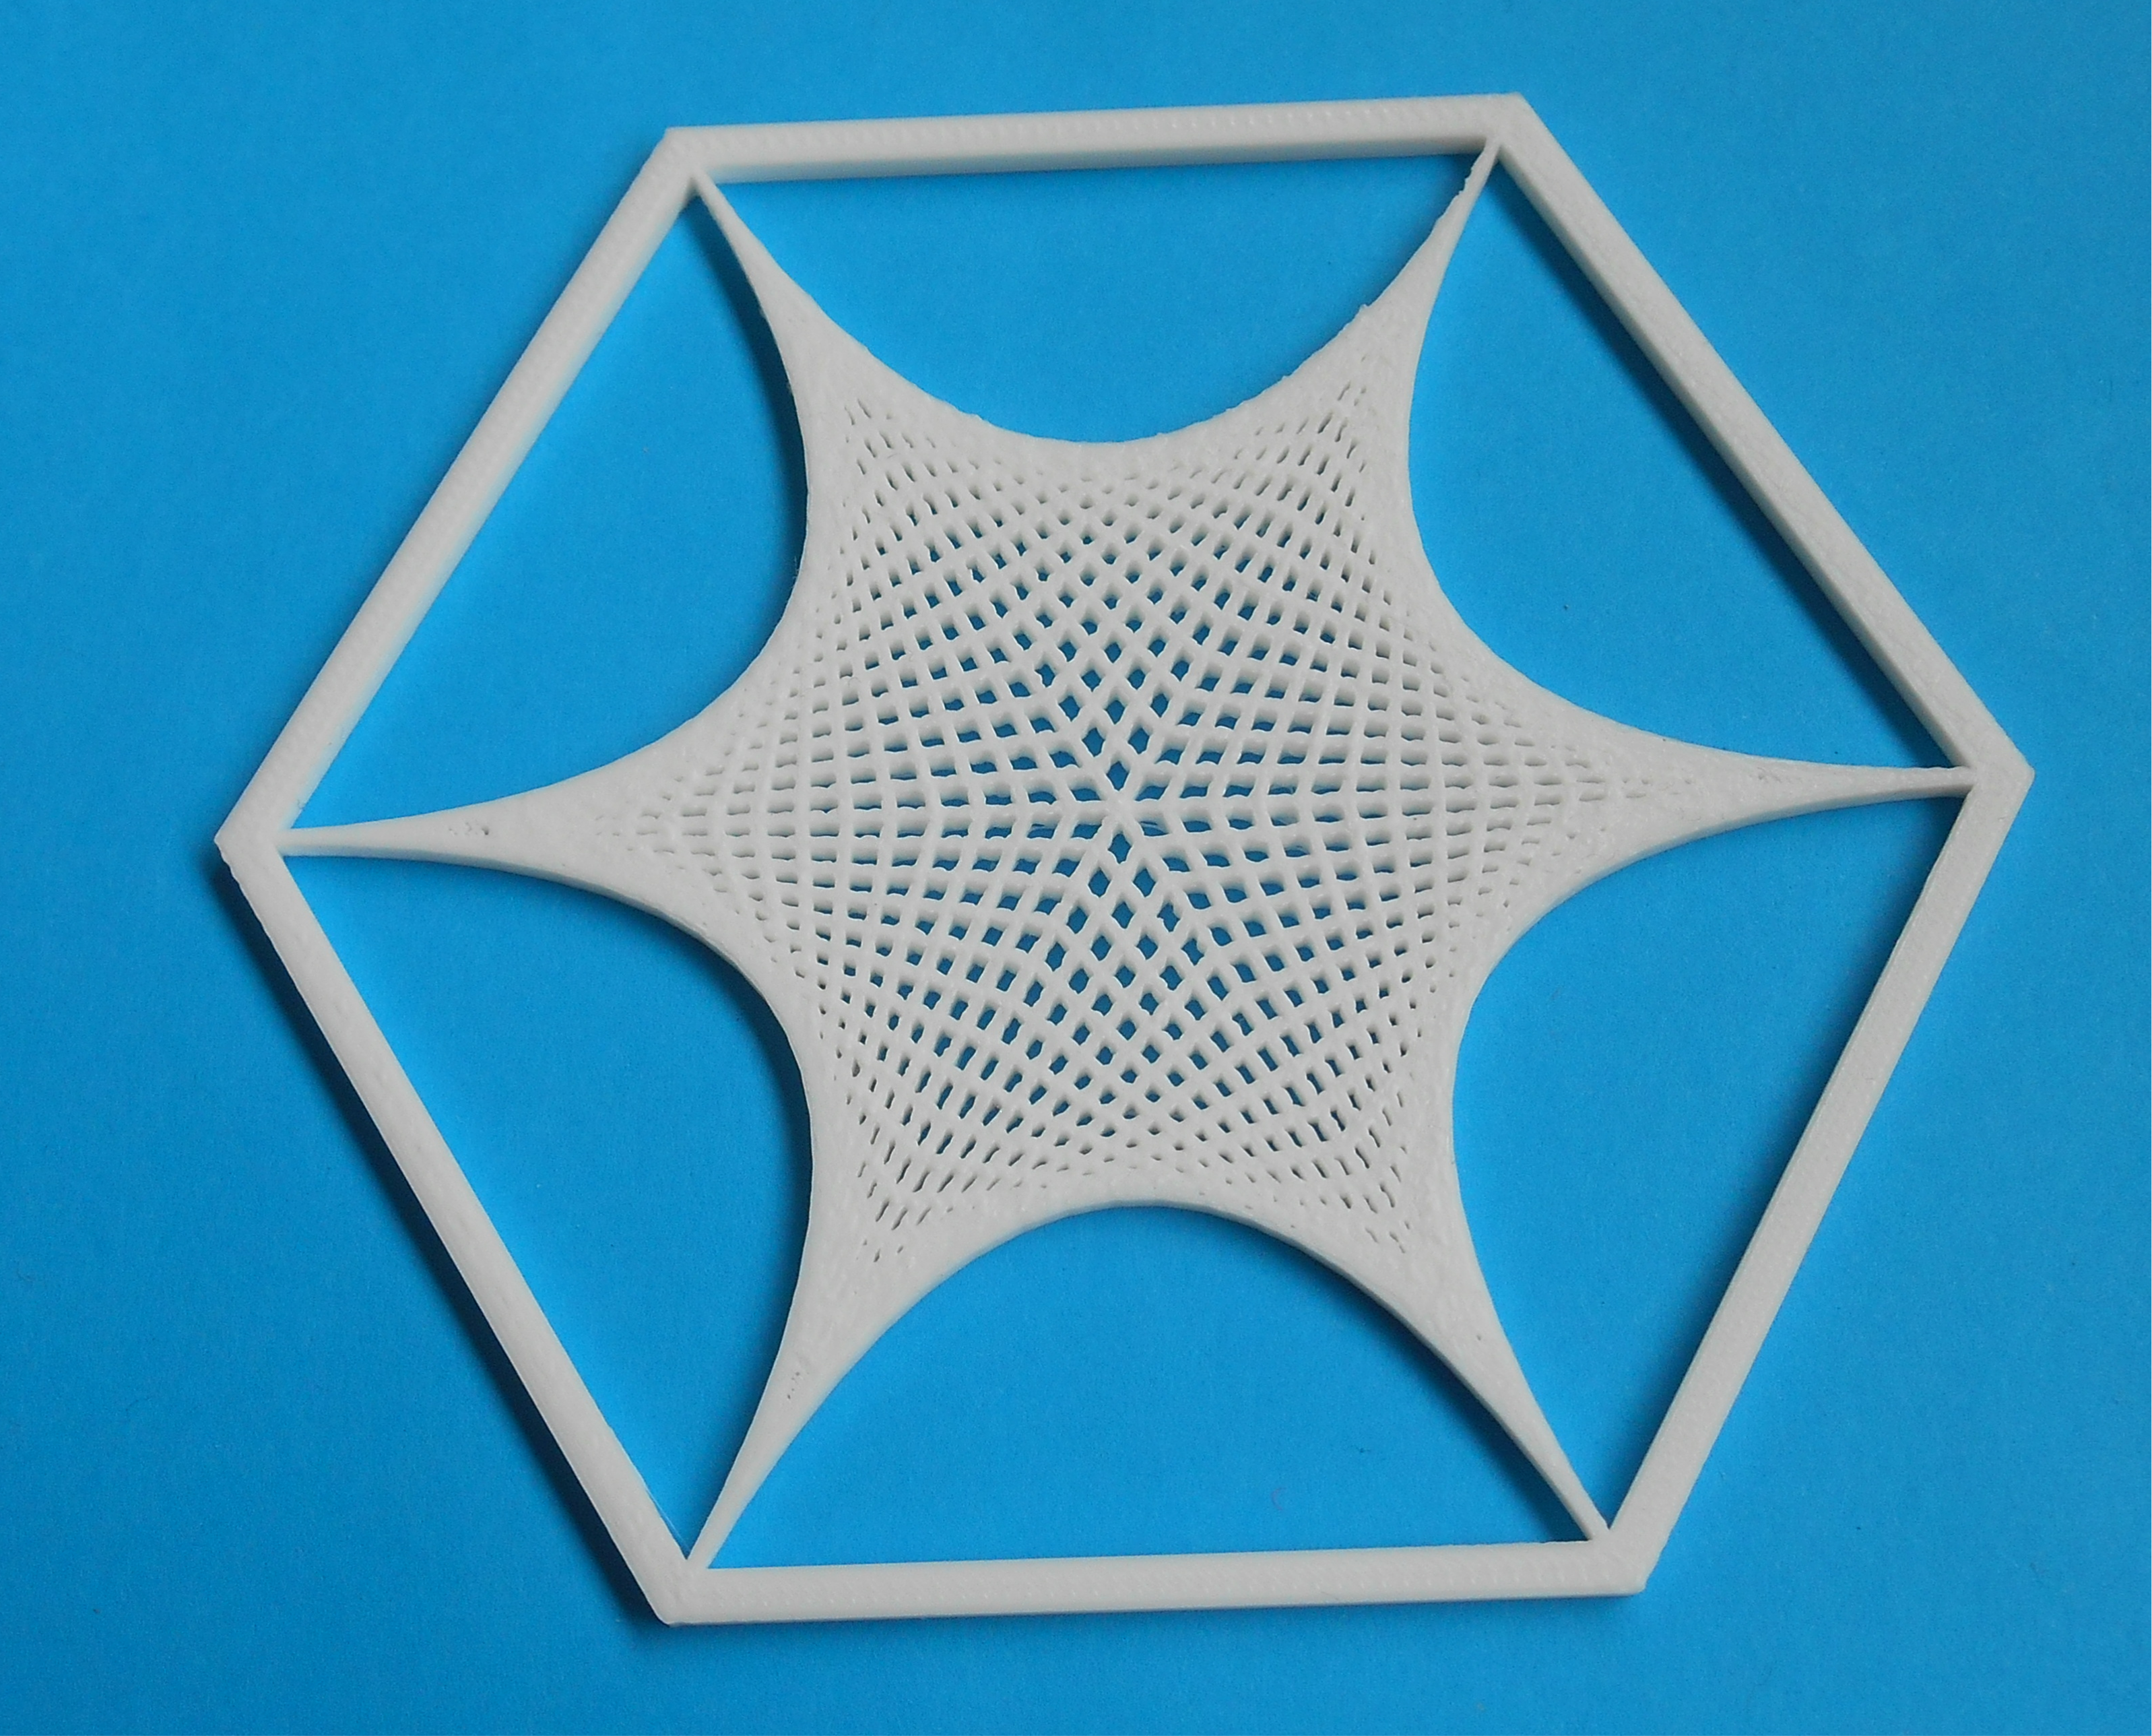 Hexagon tile with curves made from straight lines